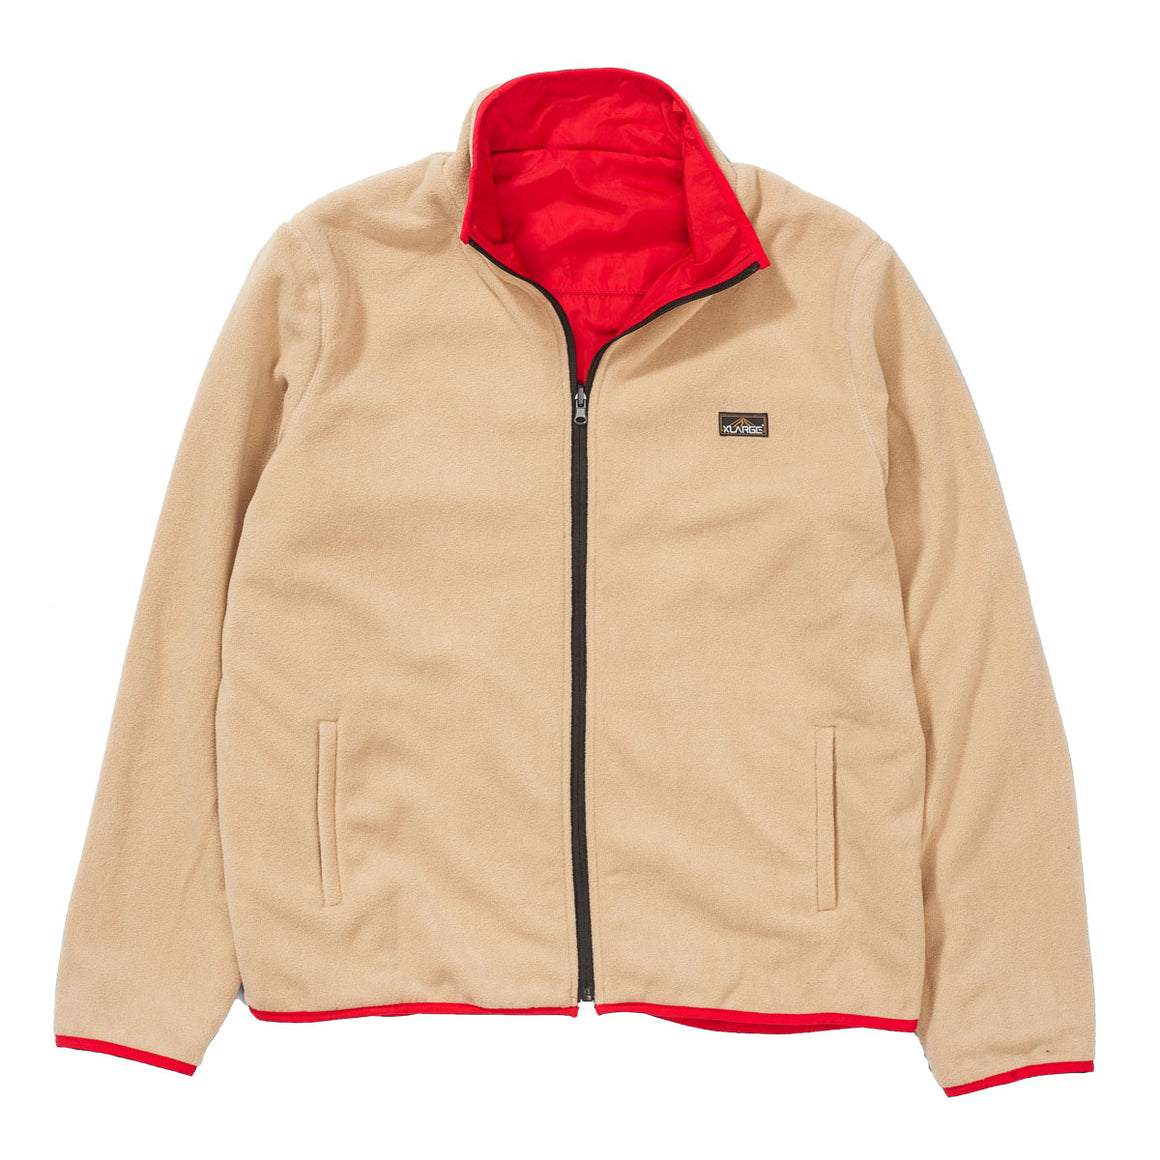 REVERSIBLE MOUNTAIN JACKET